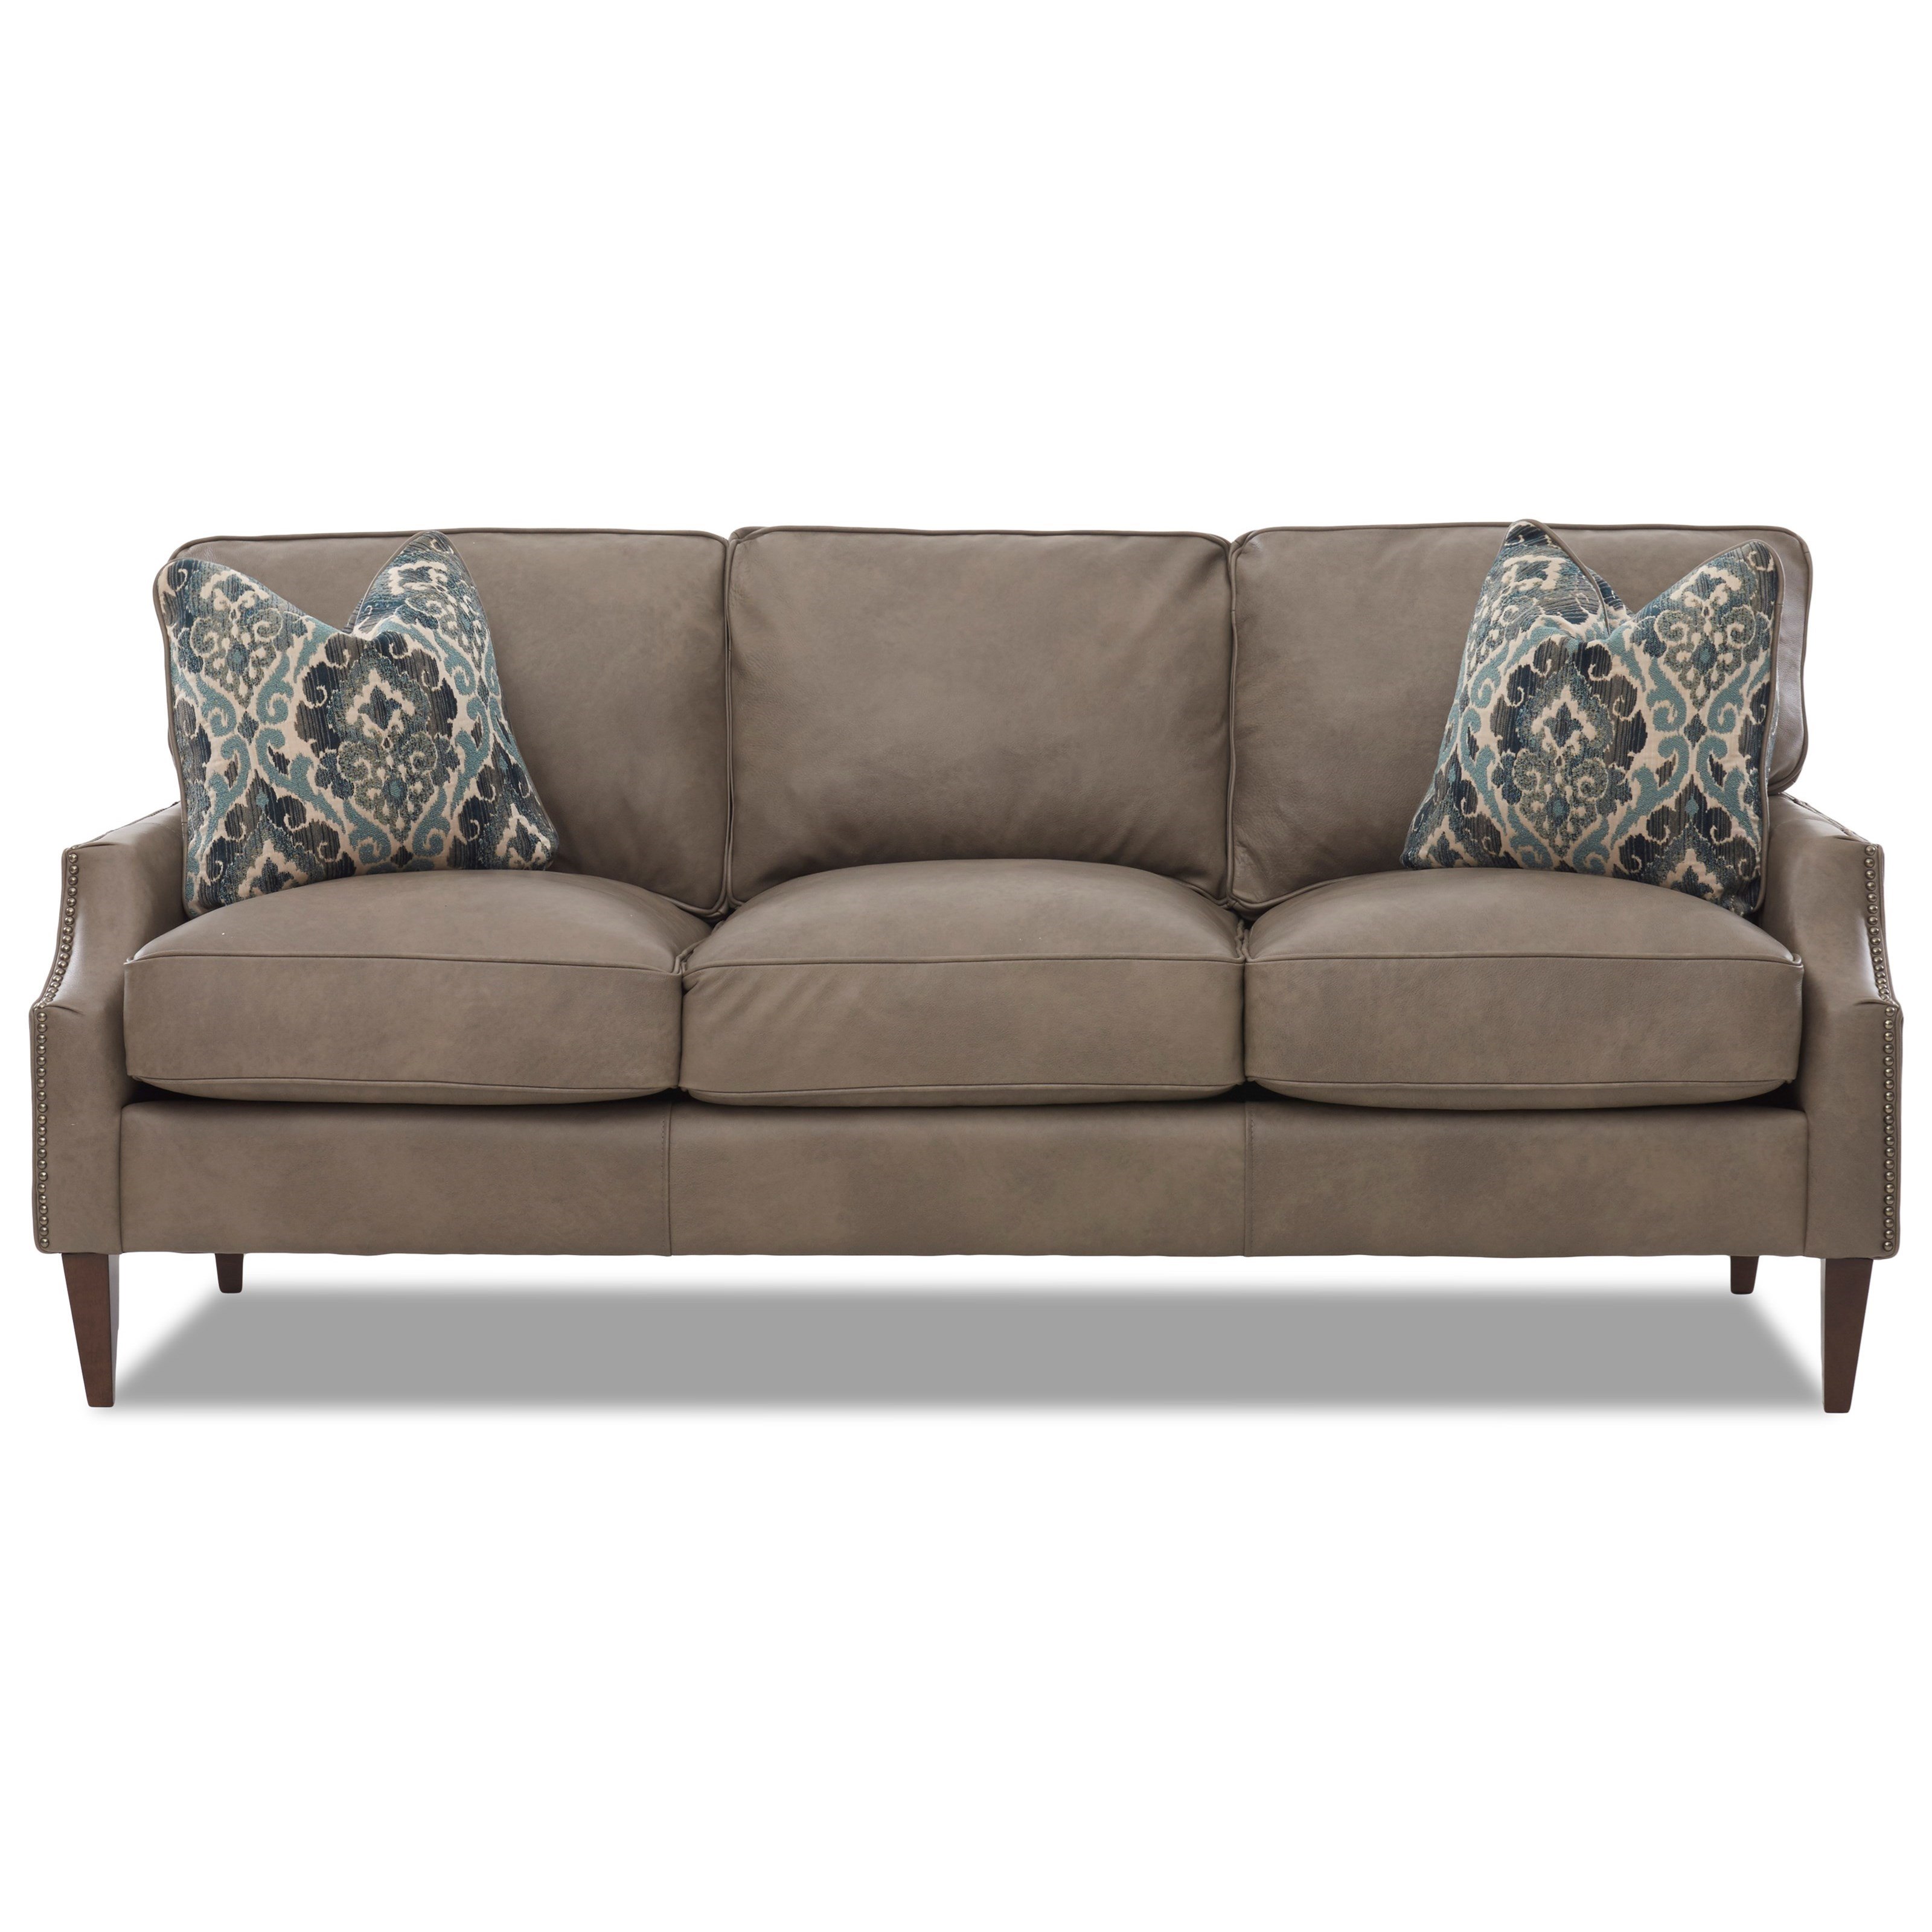 Klaussner Grammercy LD53010AP S Leather Sofa with Arm ...